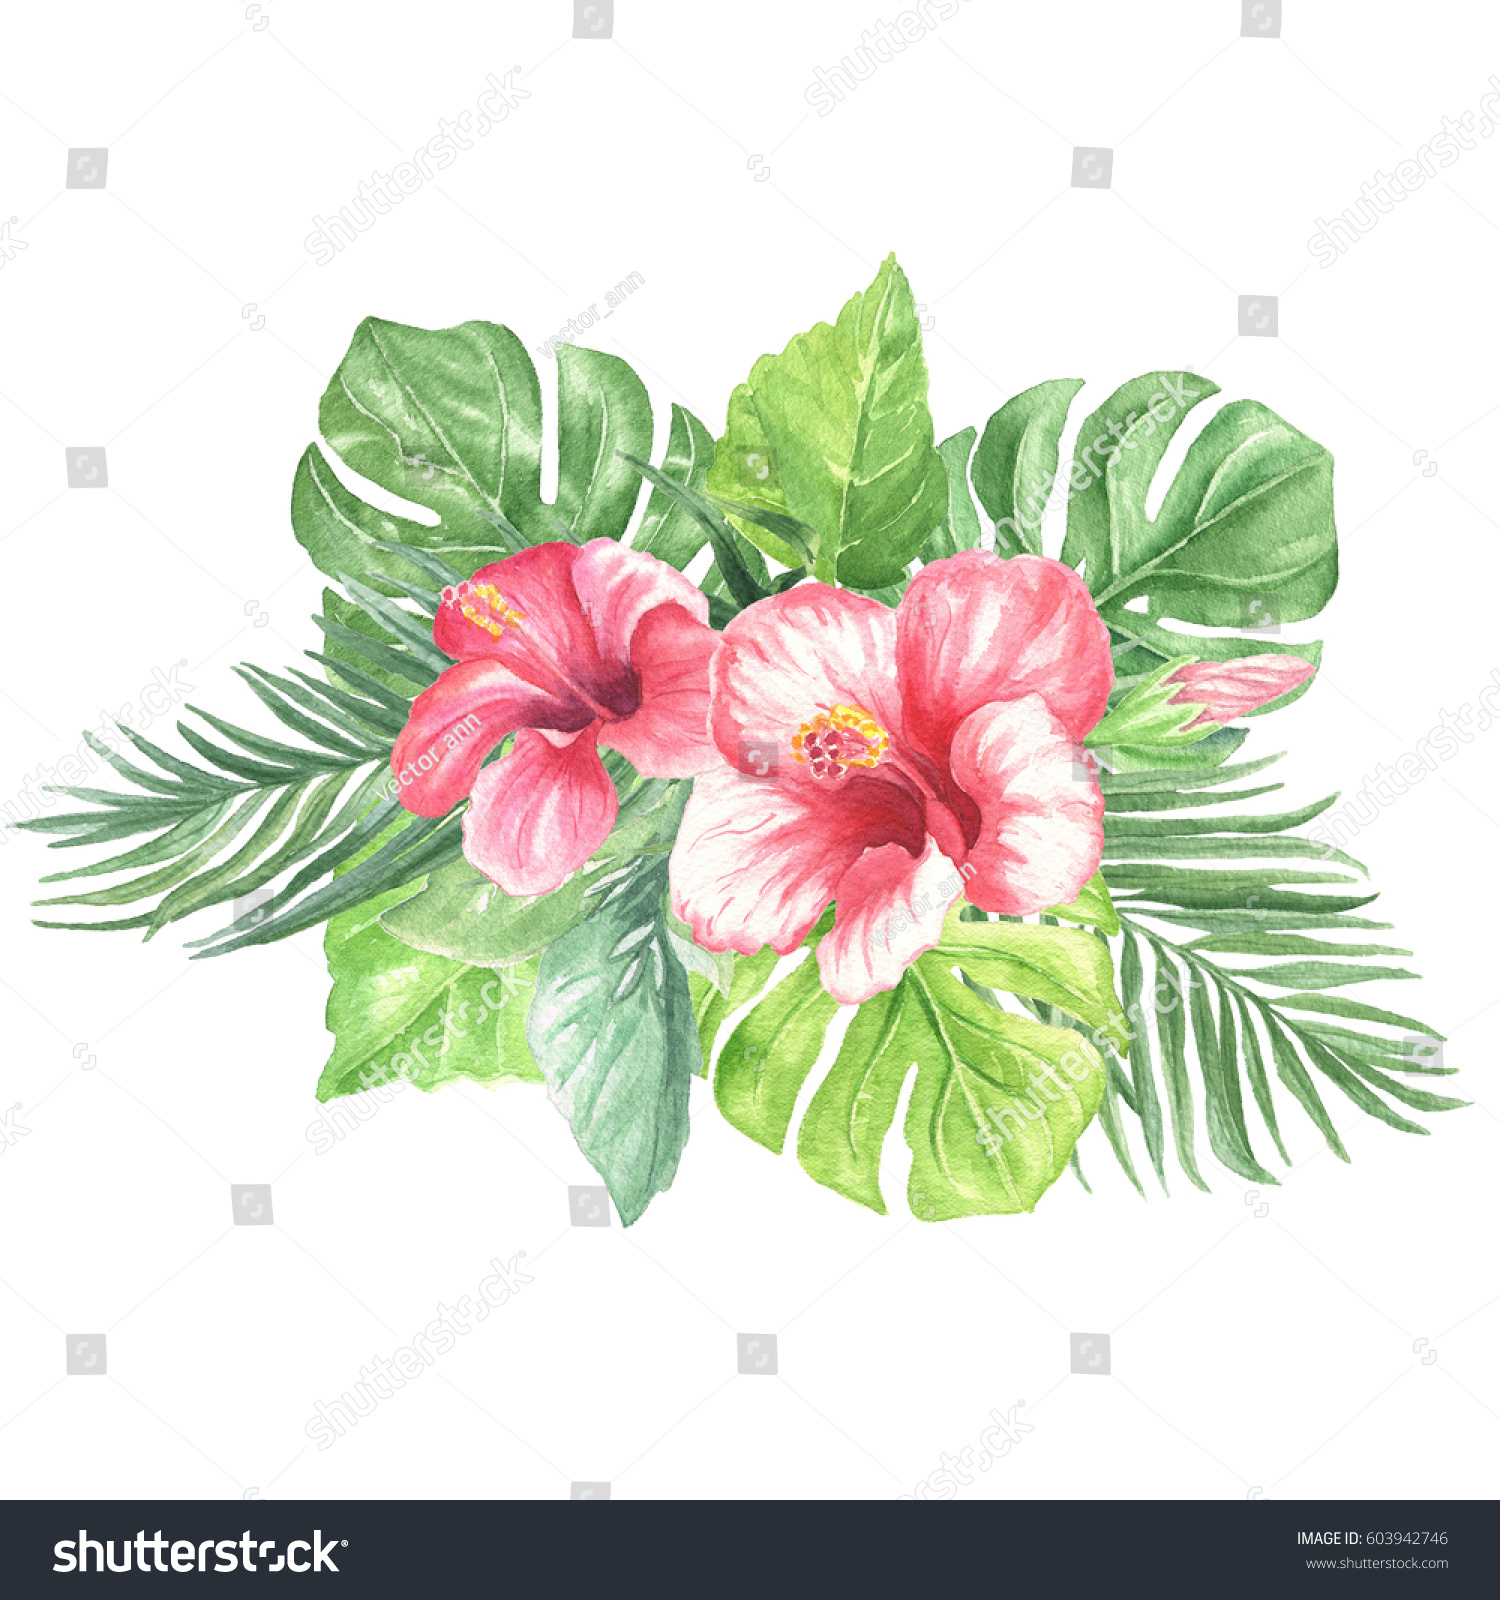 Royalty Free Stock Illustration Of Beautiful Floral Hand Drawn